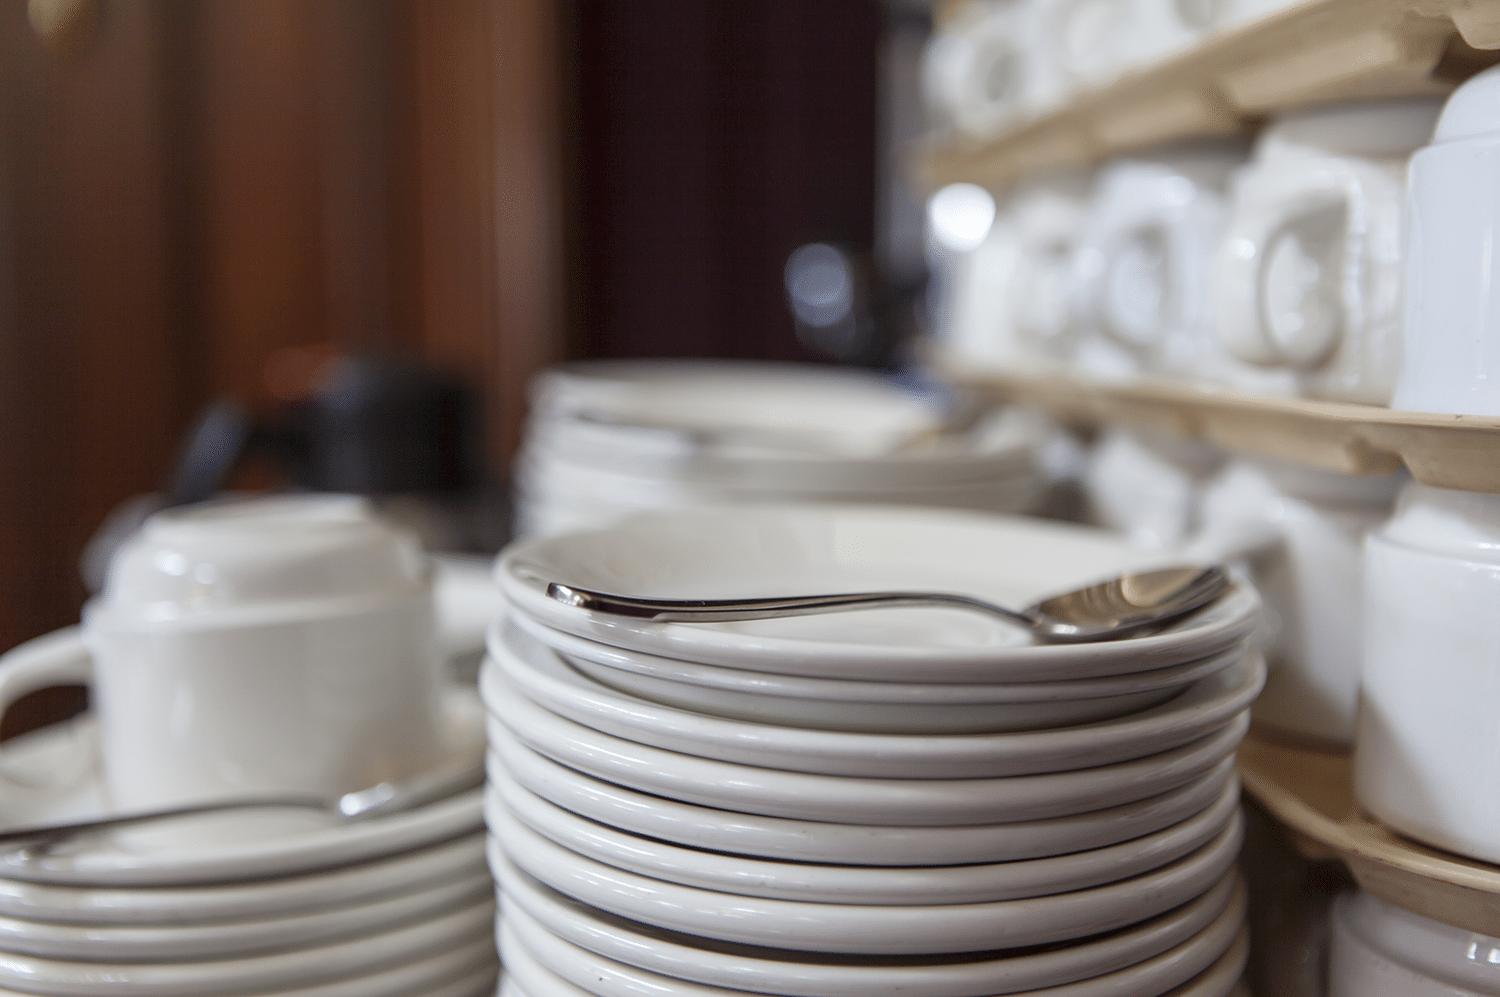 restaurant-equip-4Supply Solutions | Restaurant Equipment | Dishes | Plates | Utensils